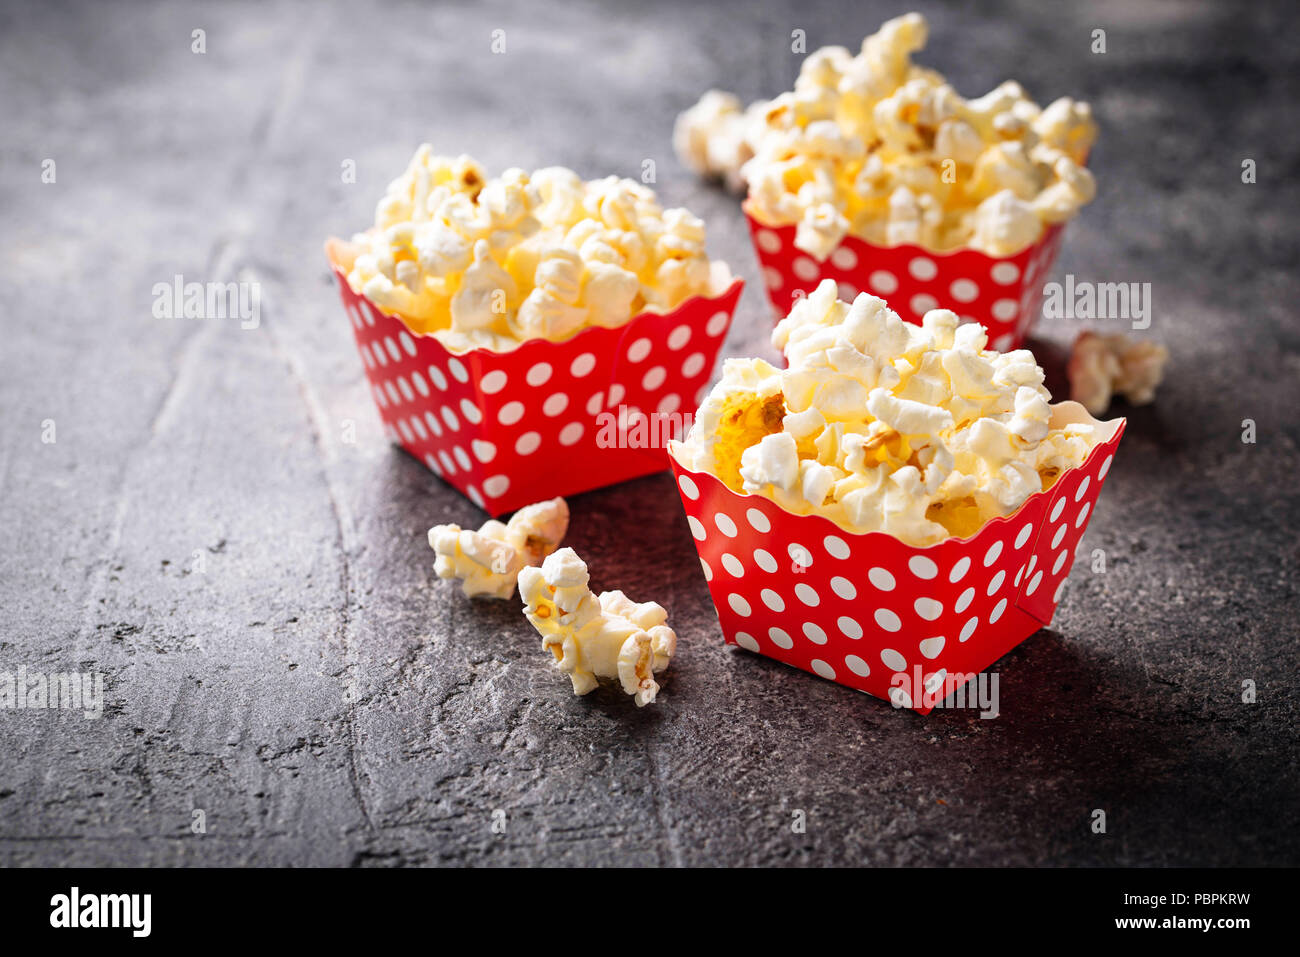 Popcorn in red polka dot pack on black concrete table. Selective focus - Stock Image